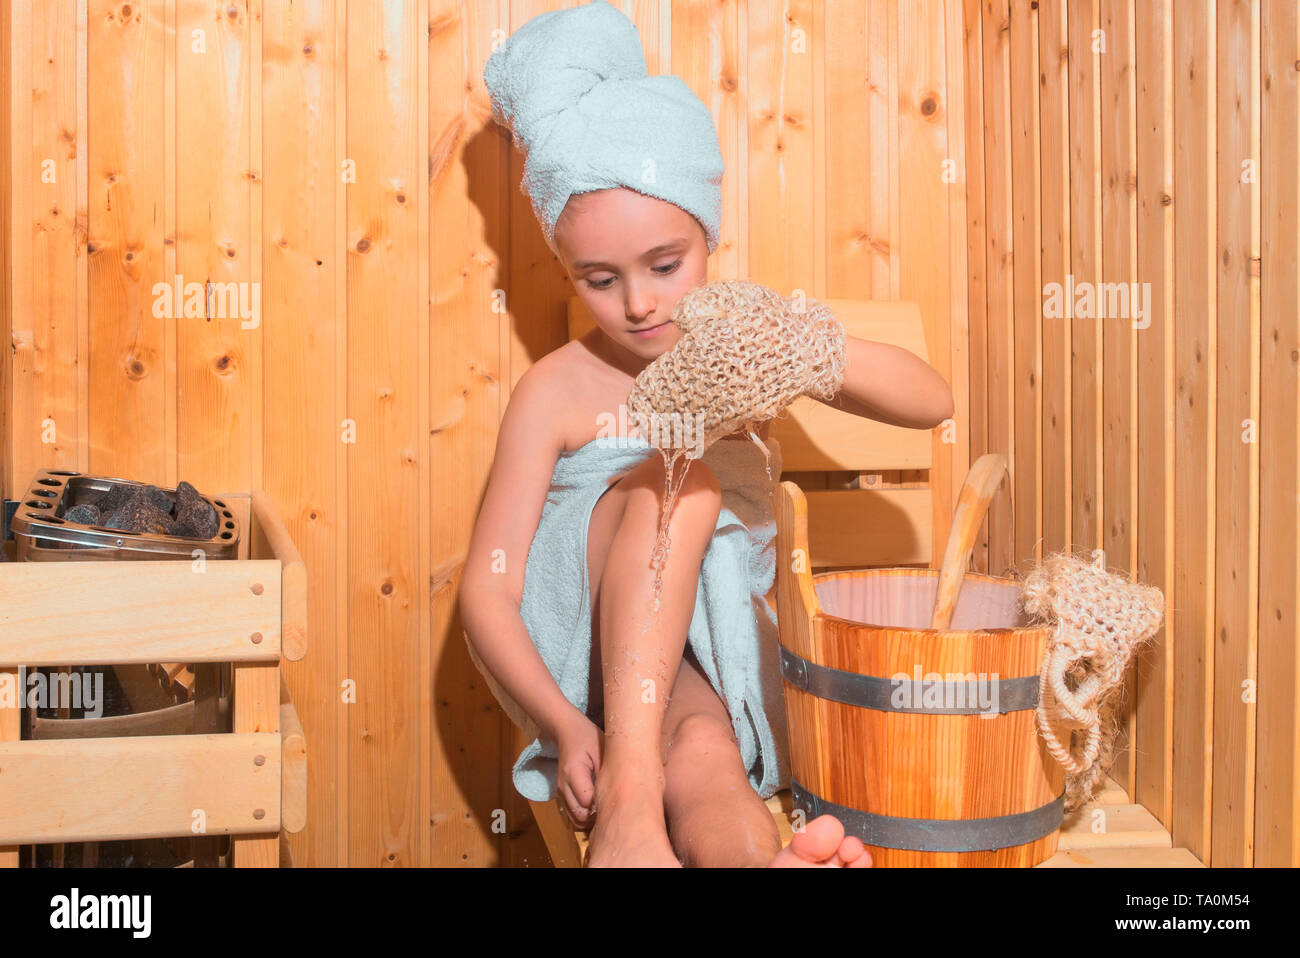 Young Girl relaxing in sauna,girl in a spa treatment in a traditional sauna with a brush for skin and a washcloth. - Stock Image